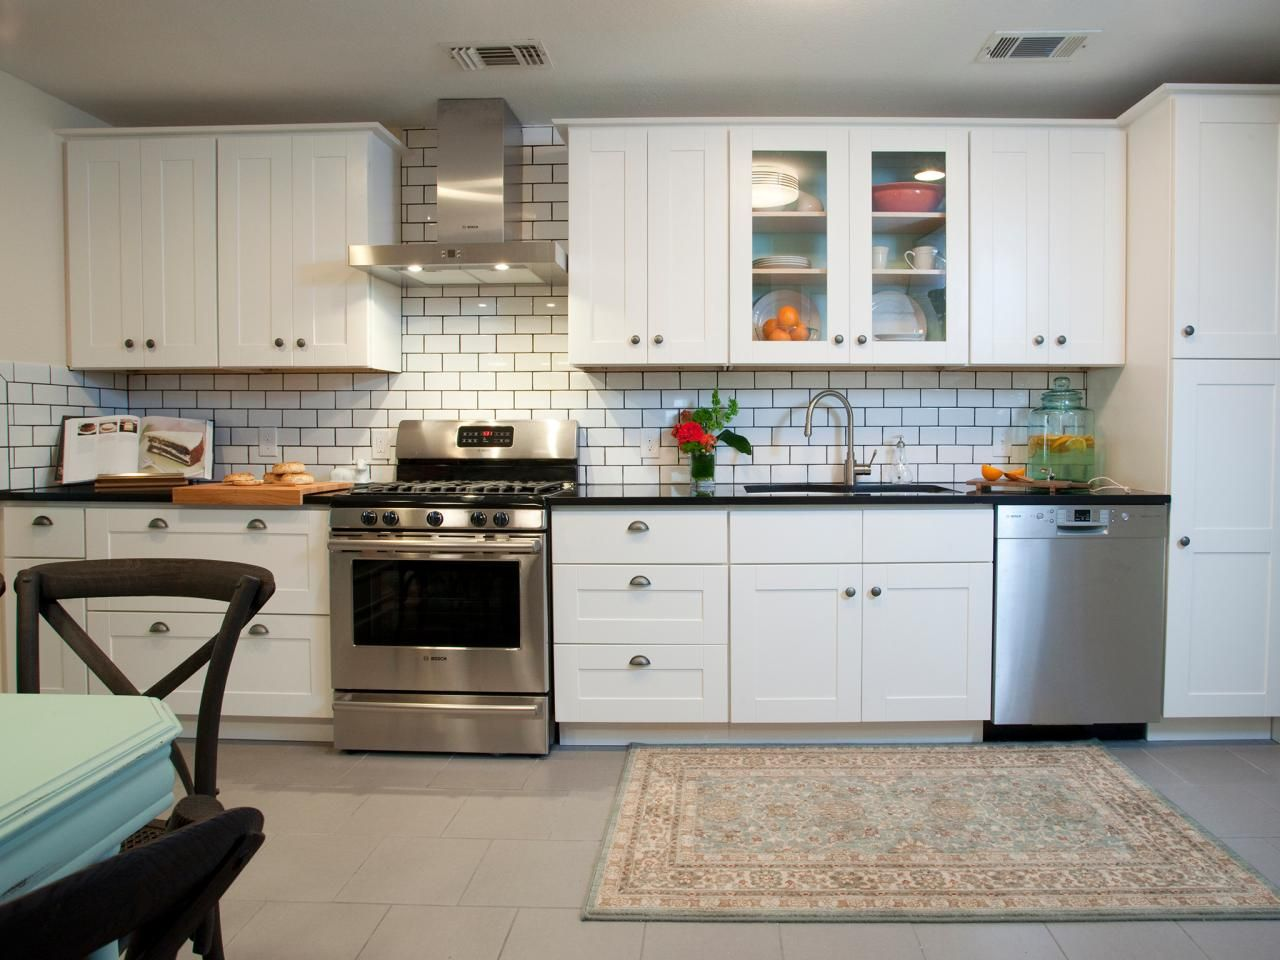 Dress Your Kitchen In Style With Some White Subway Tiles